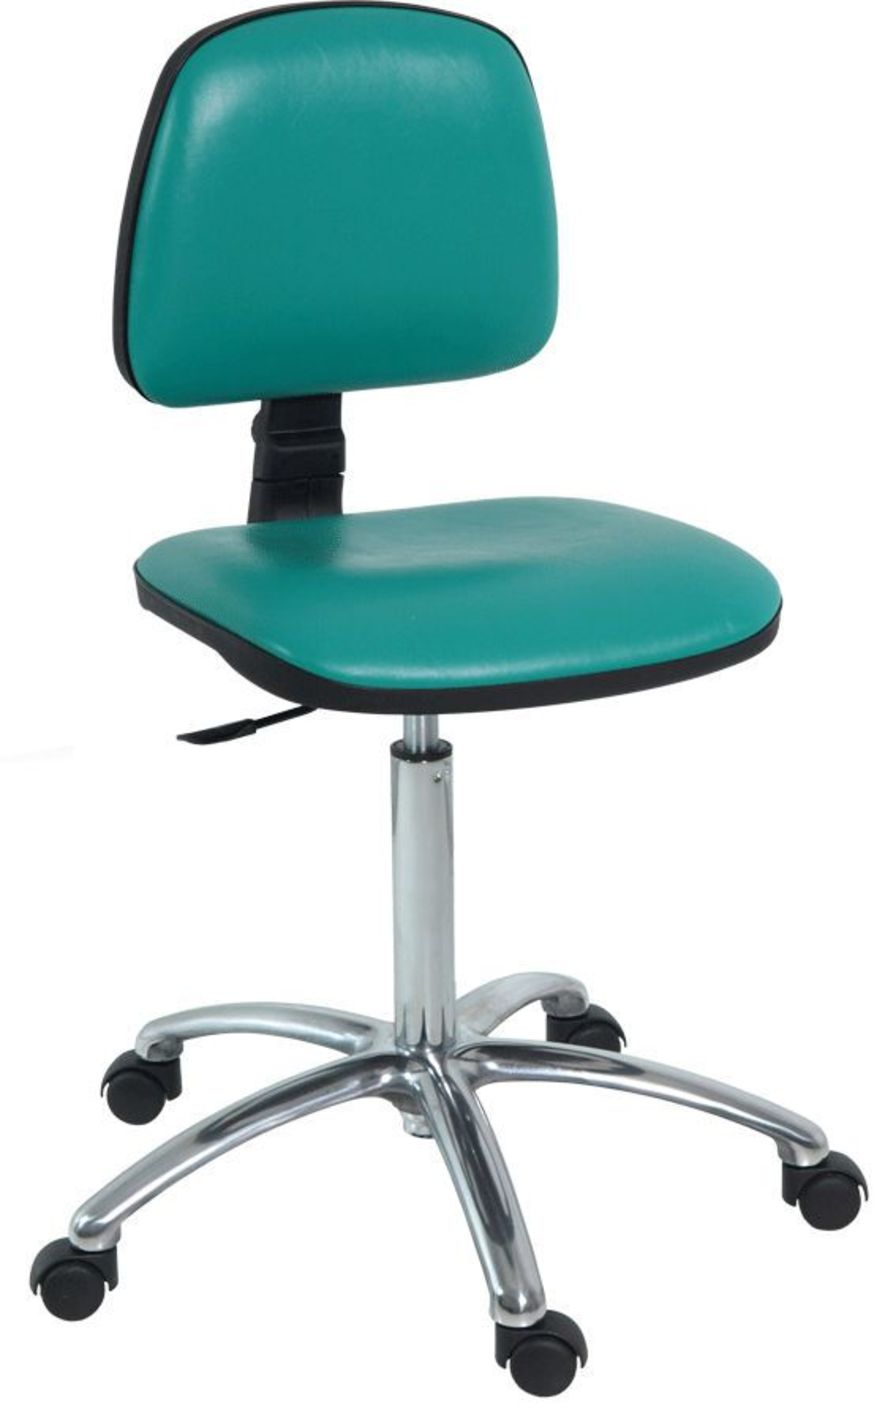 Medical stool / height-adjustable / on casters / with backrest 500 mm - 700 mm | H-193 Hidemar